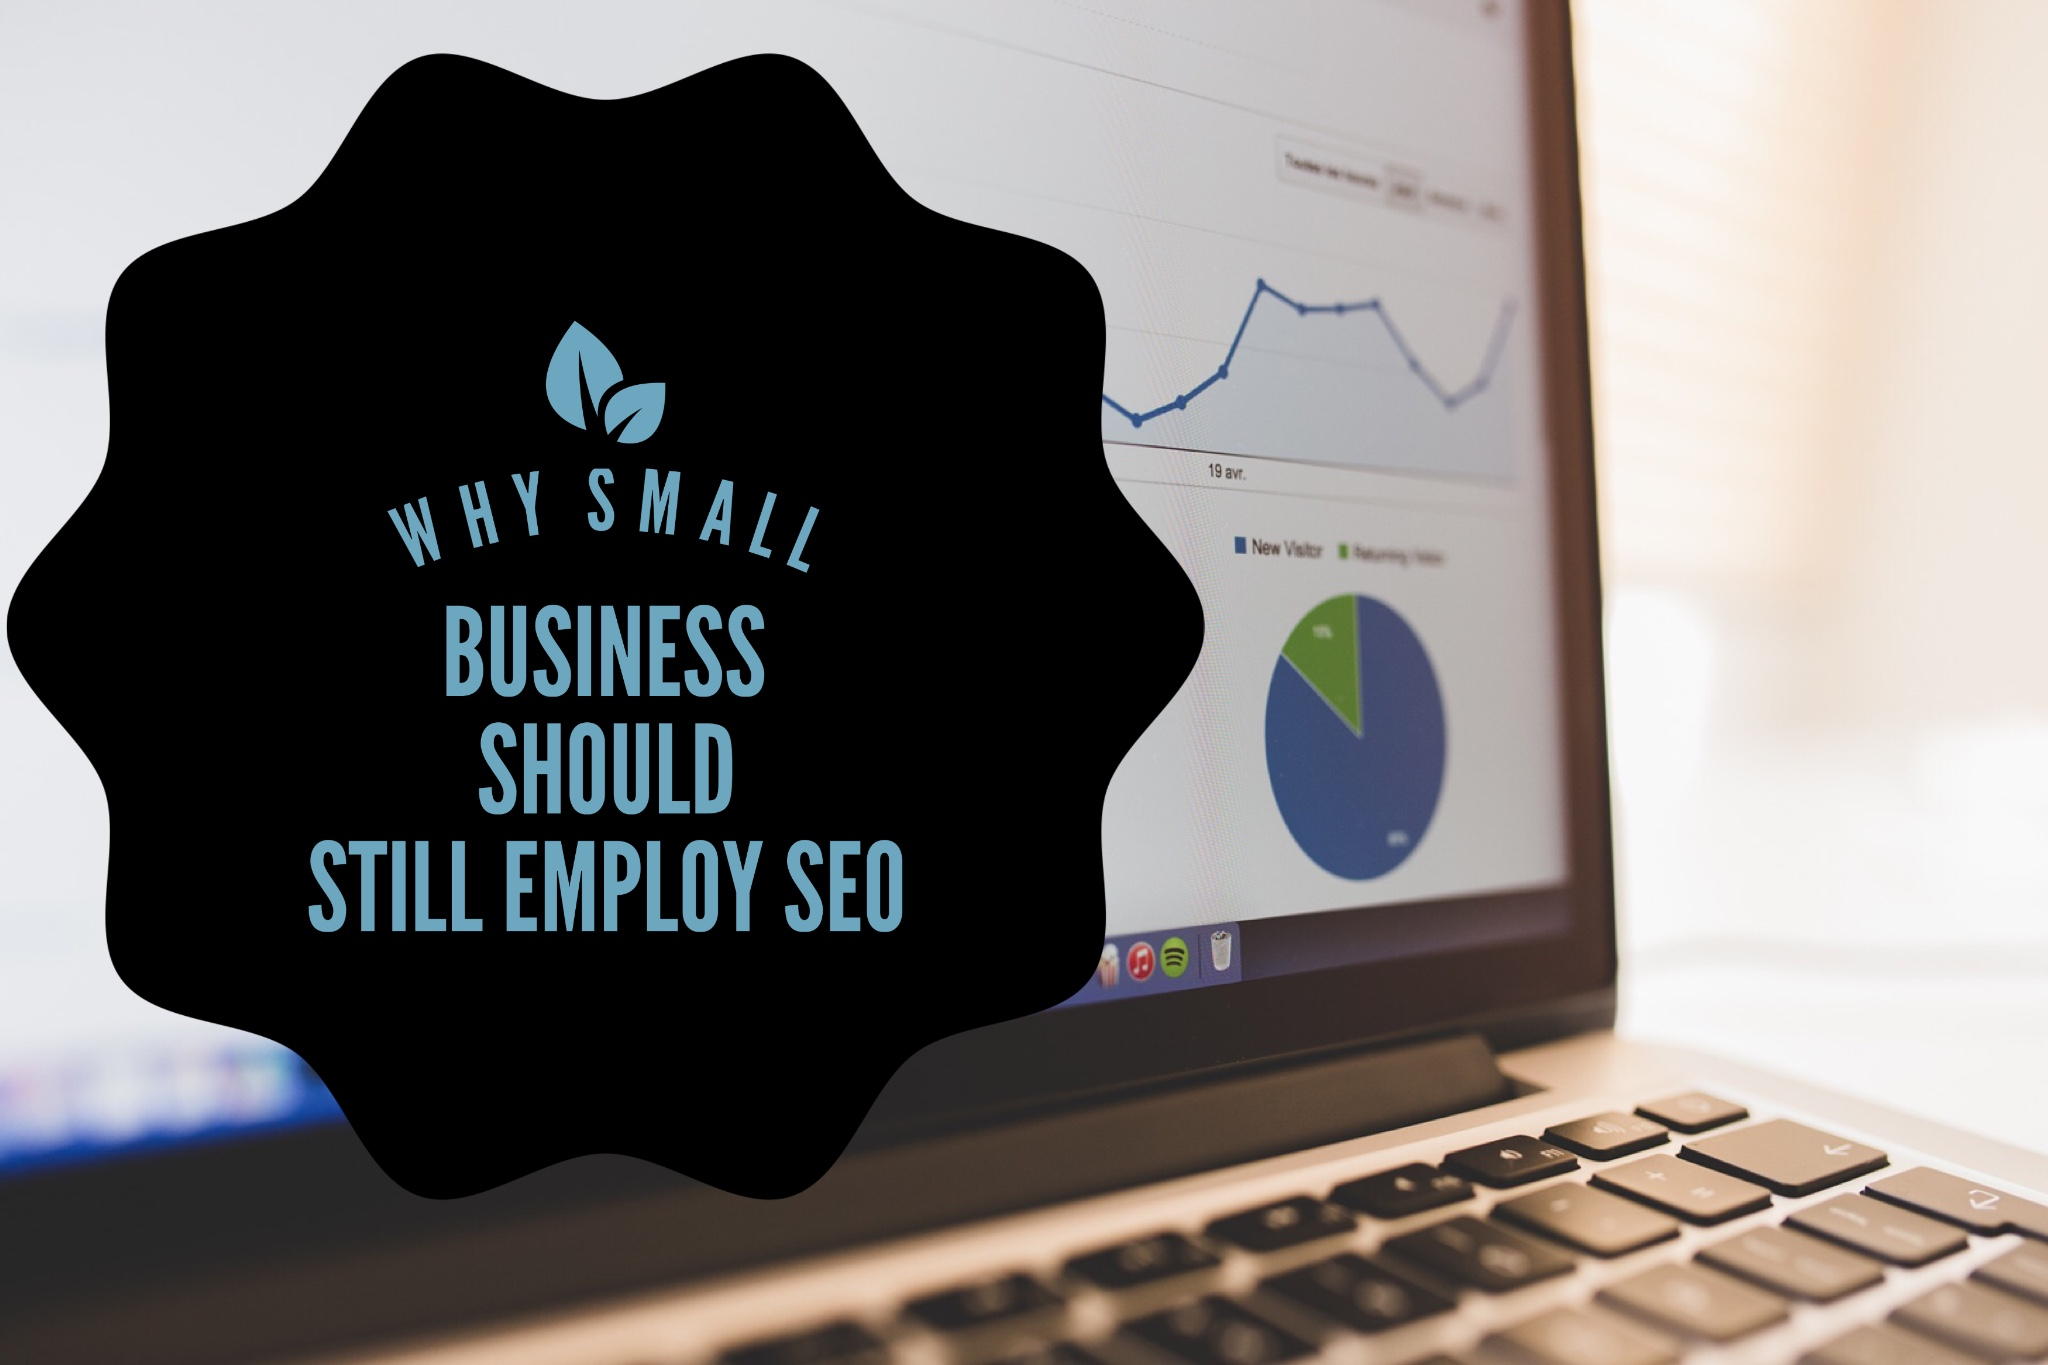 Case Studies Why Small Business Should Still Employ SEO Small Business SEO Case Studies Seo Case Studies Small Business